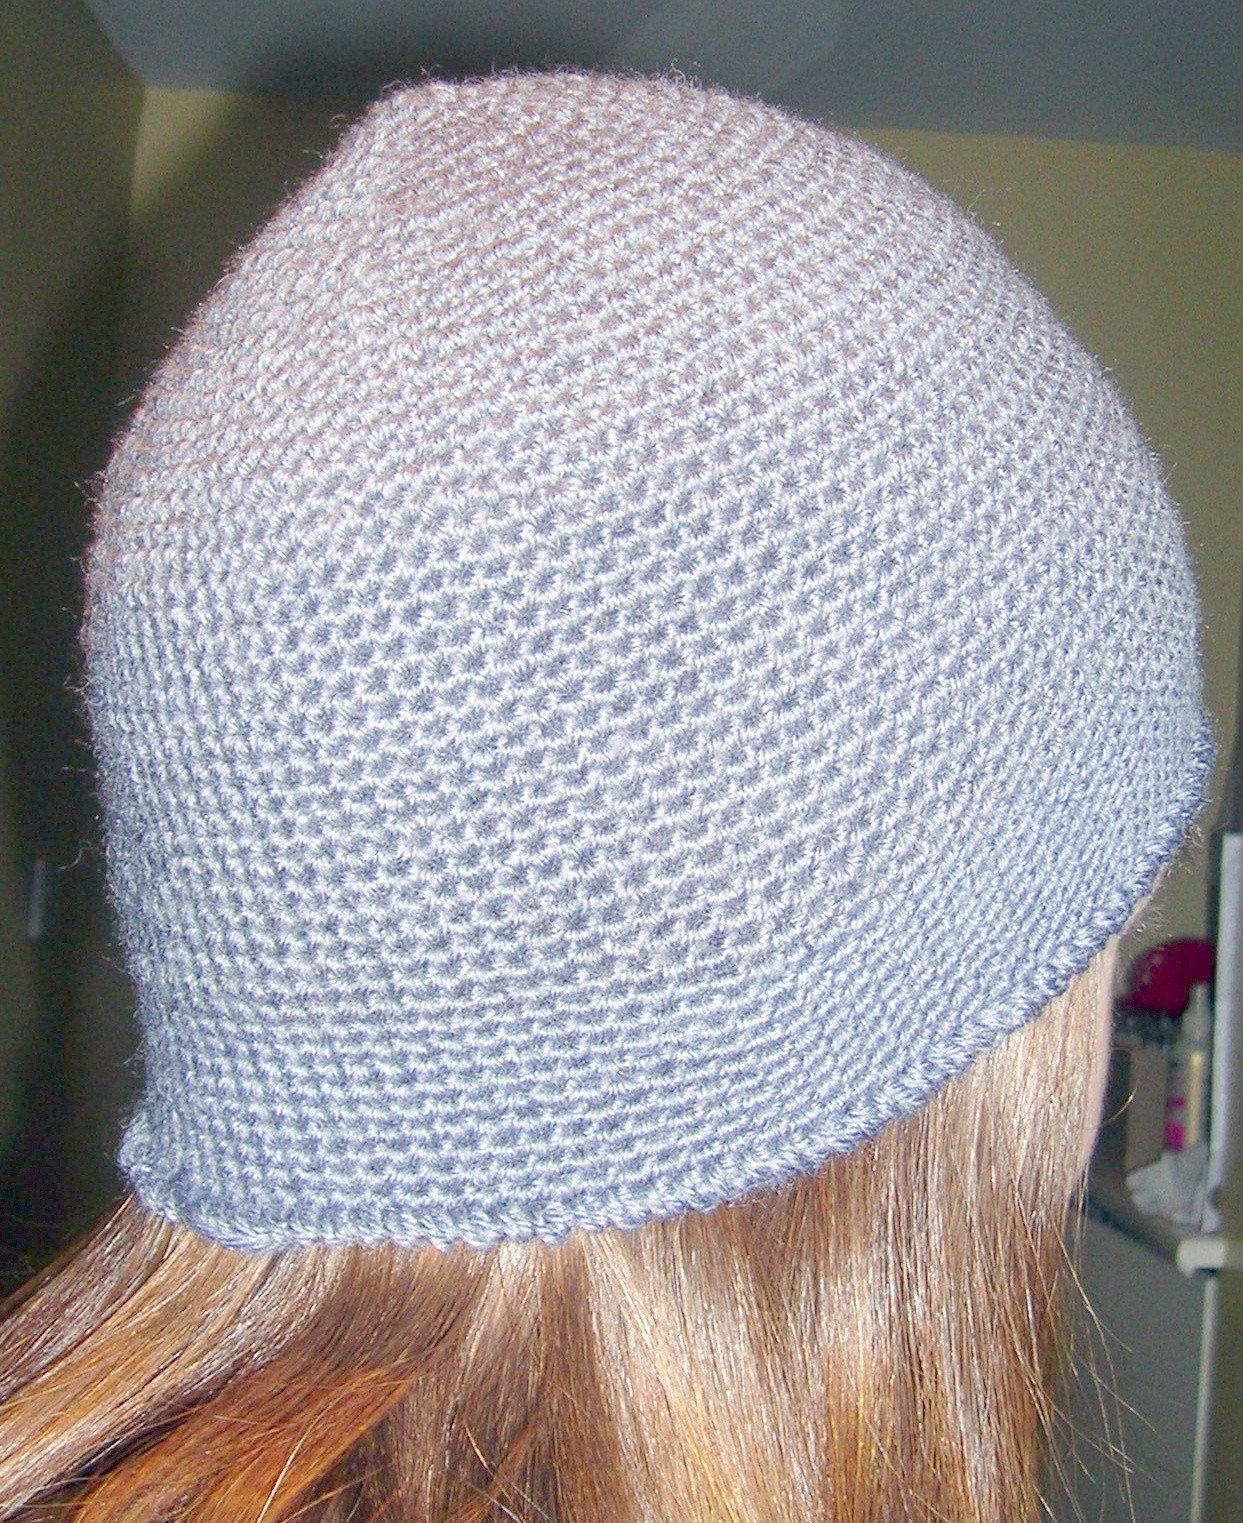 Increasing Crochet in the Round for Rugs Hats and Other